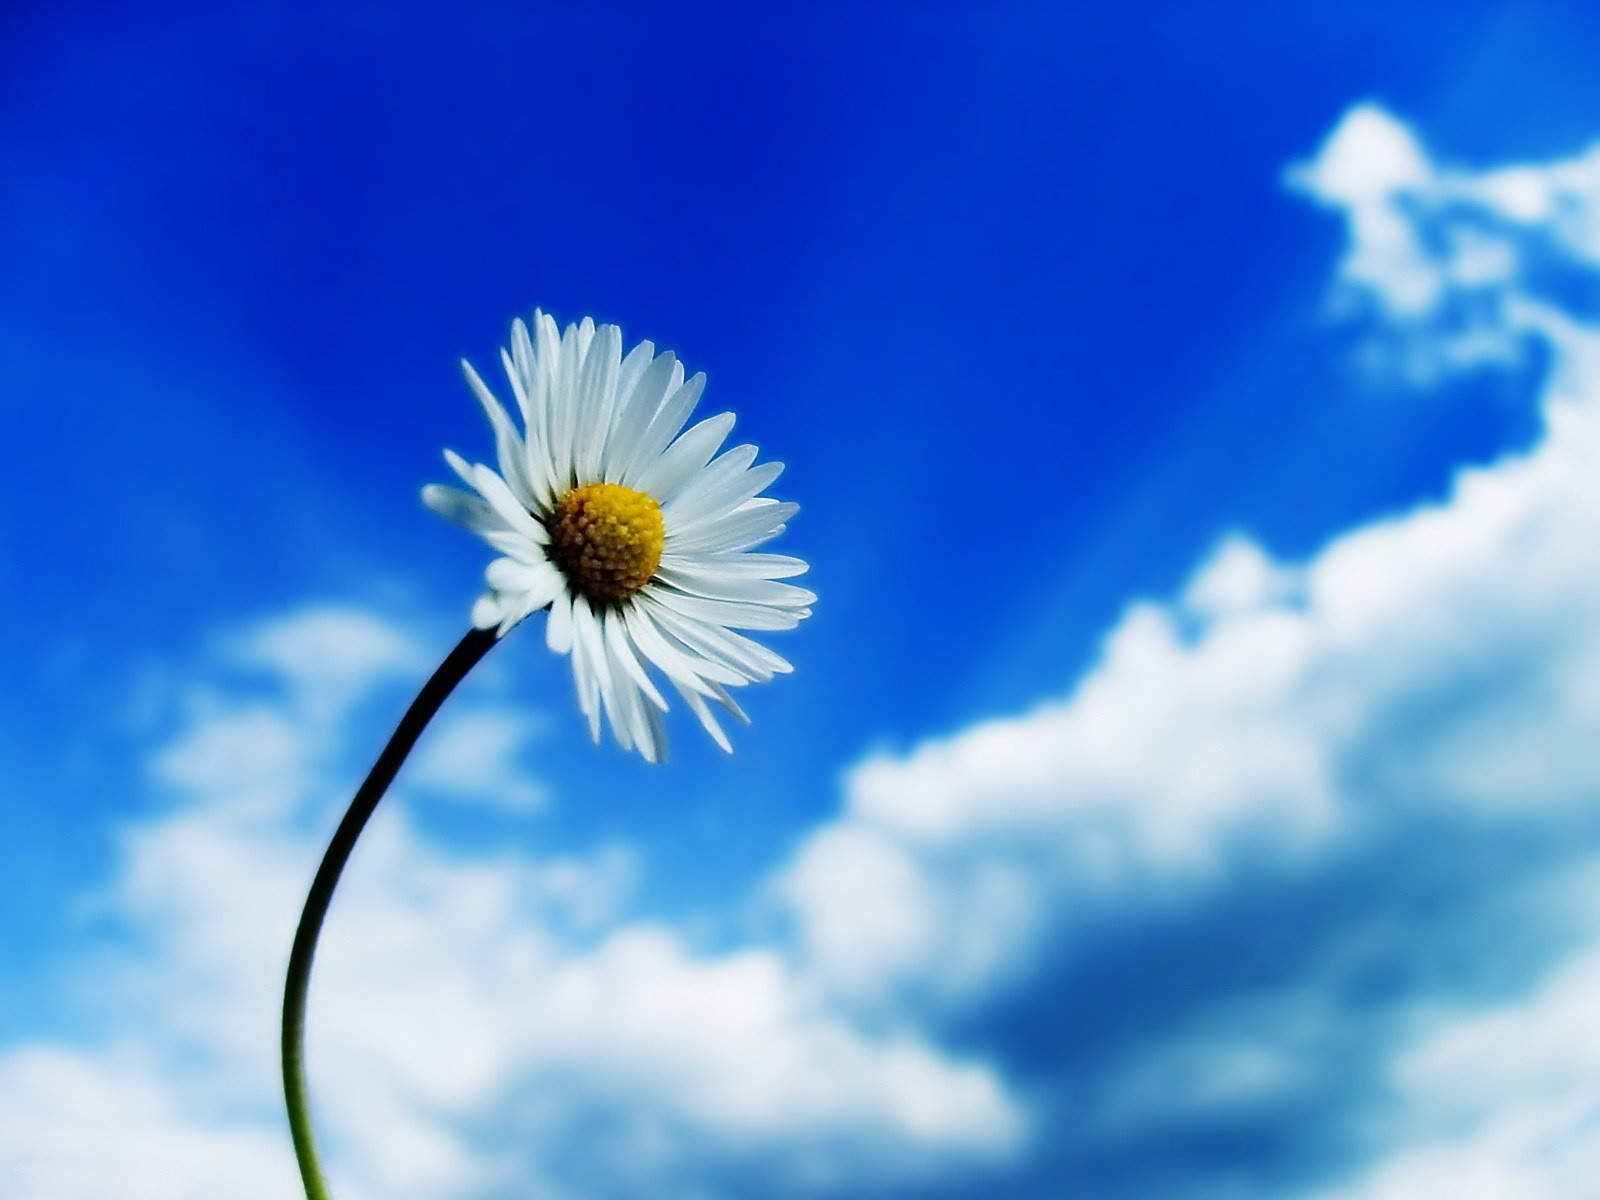 White Flower And Blue Sky